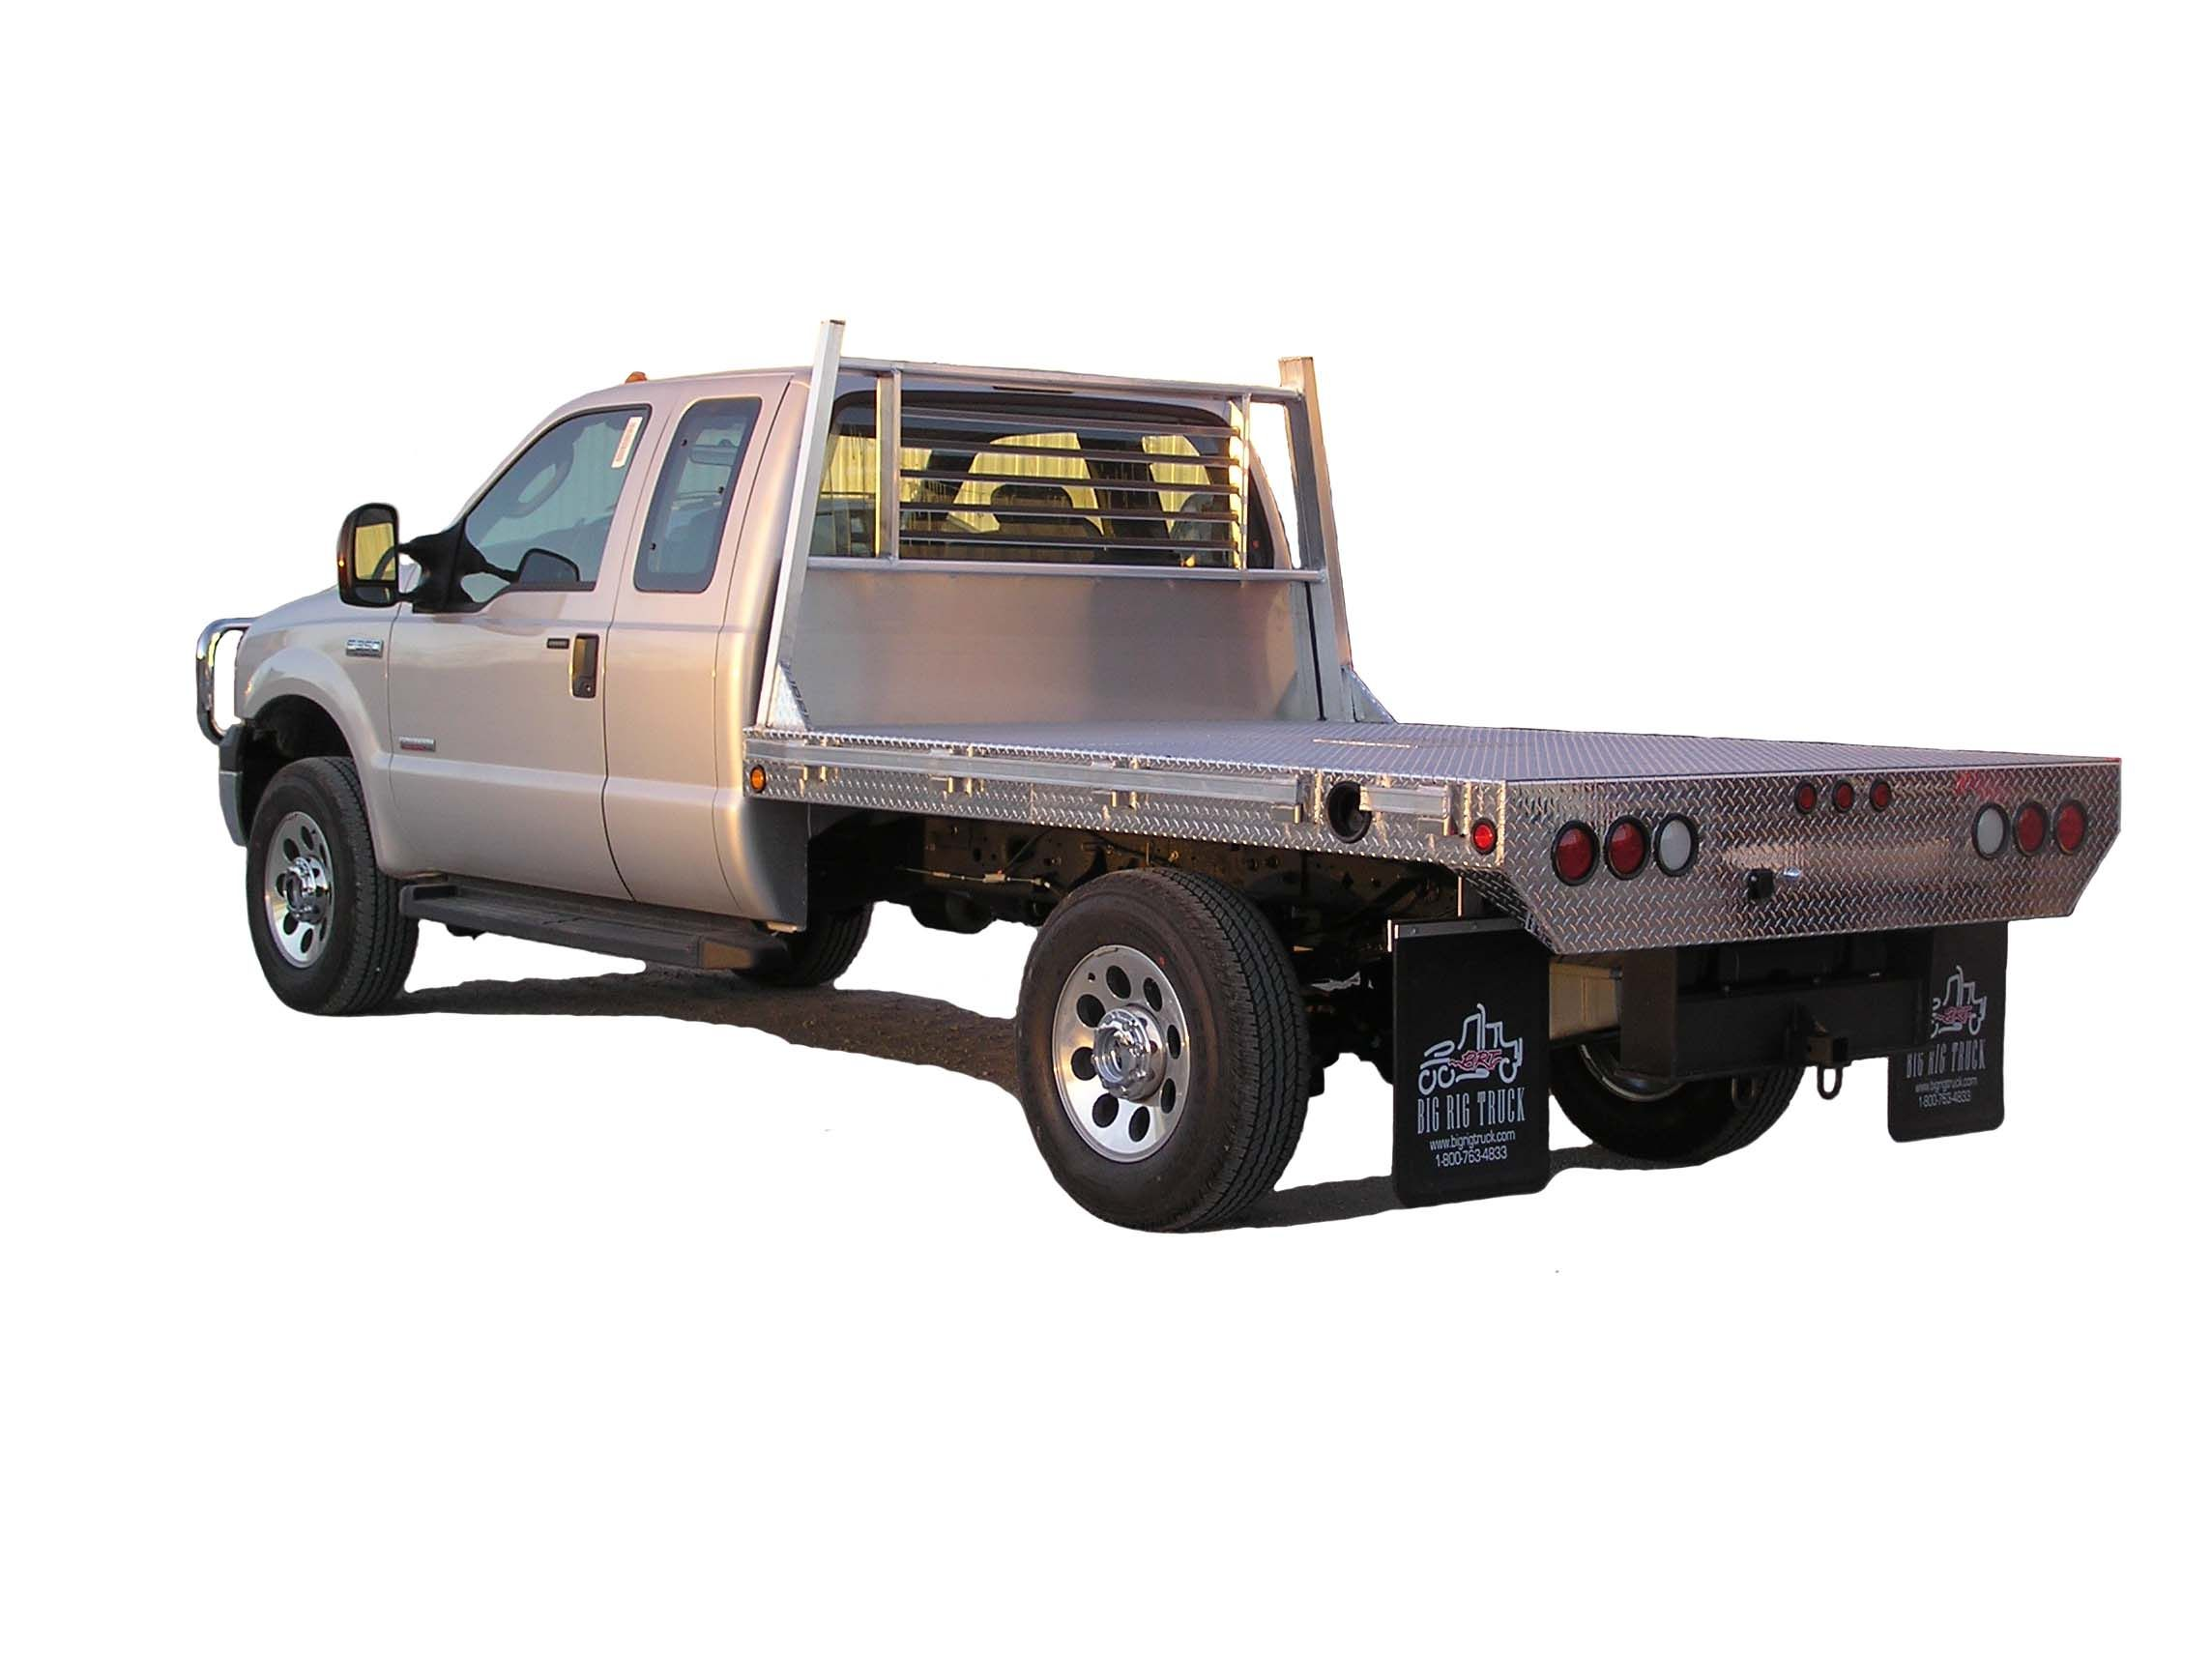 flatbeds for trucks Alumminum flatbed on Ford F250